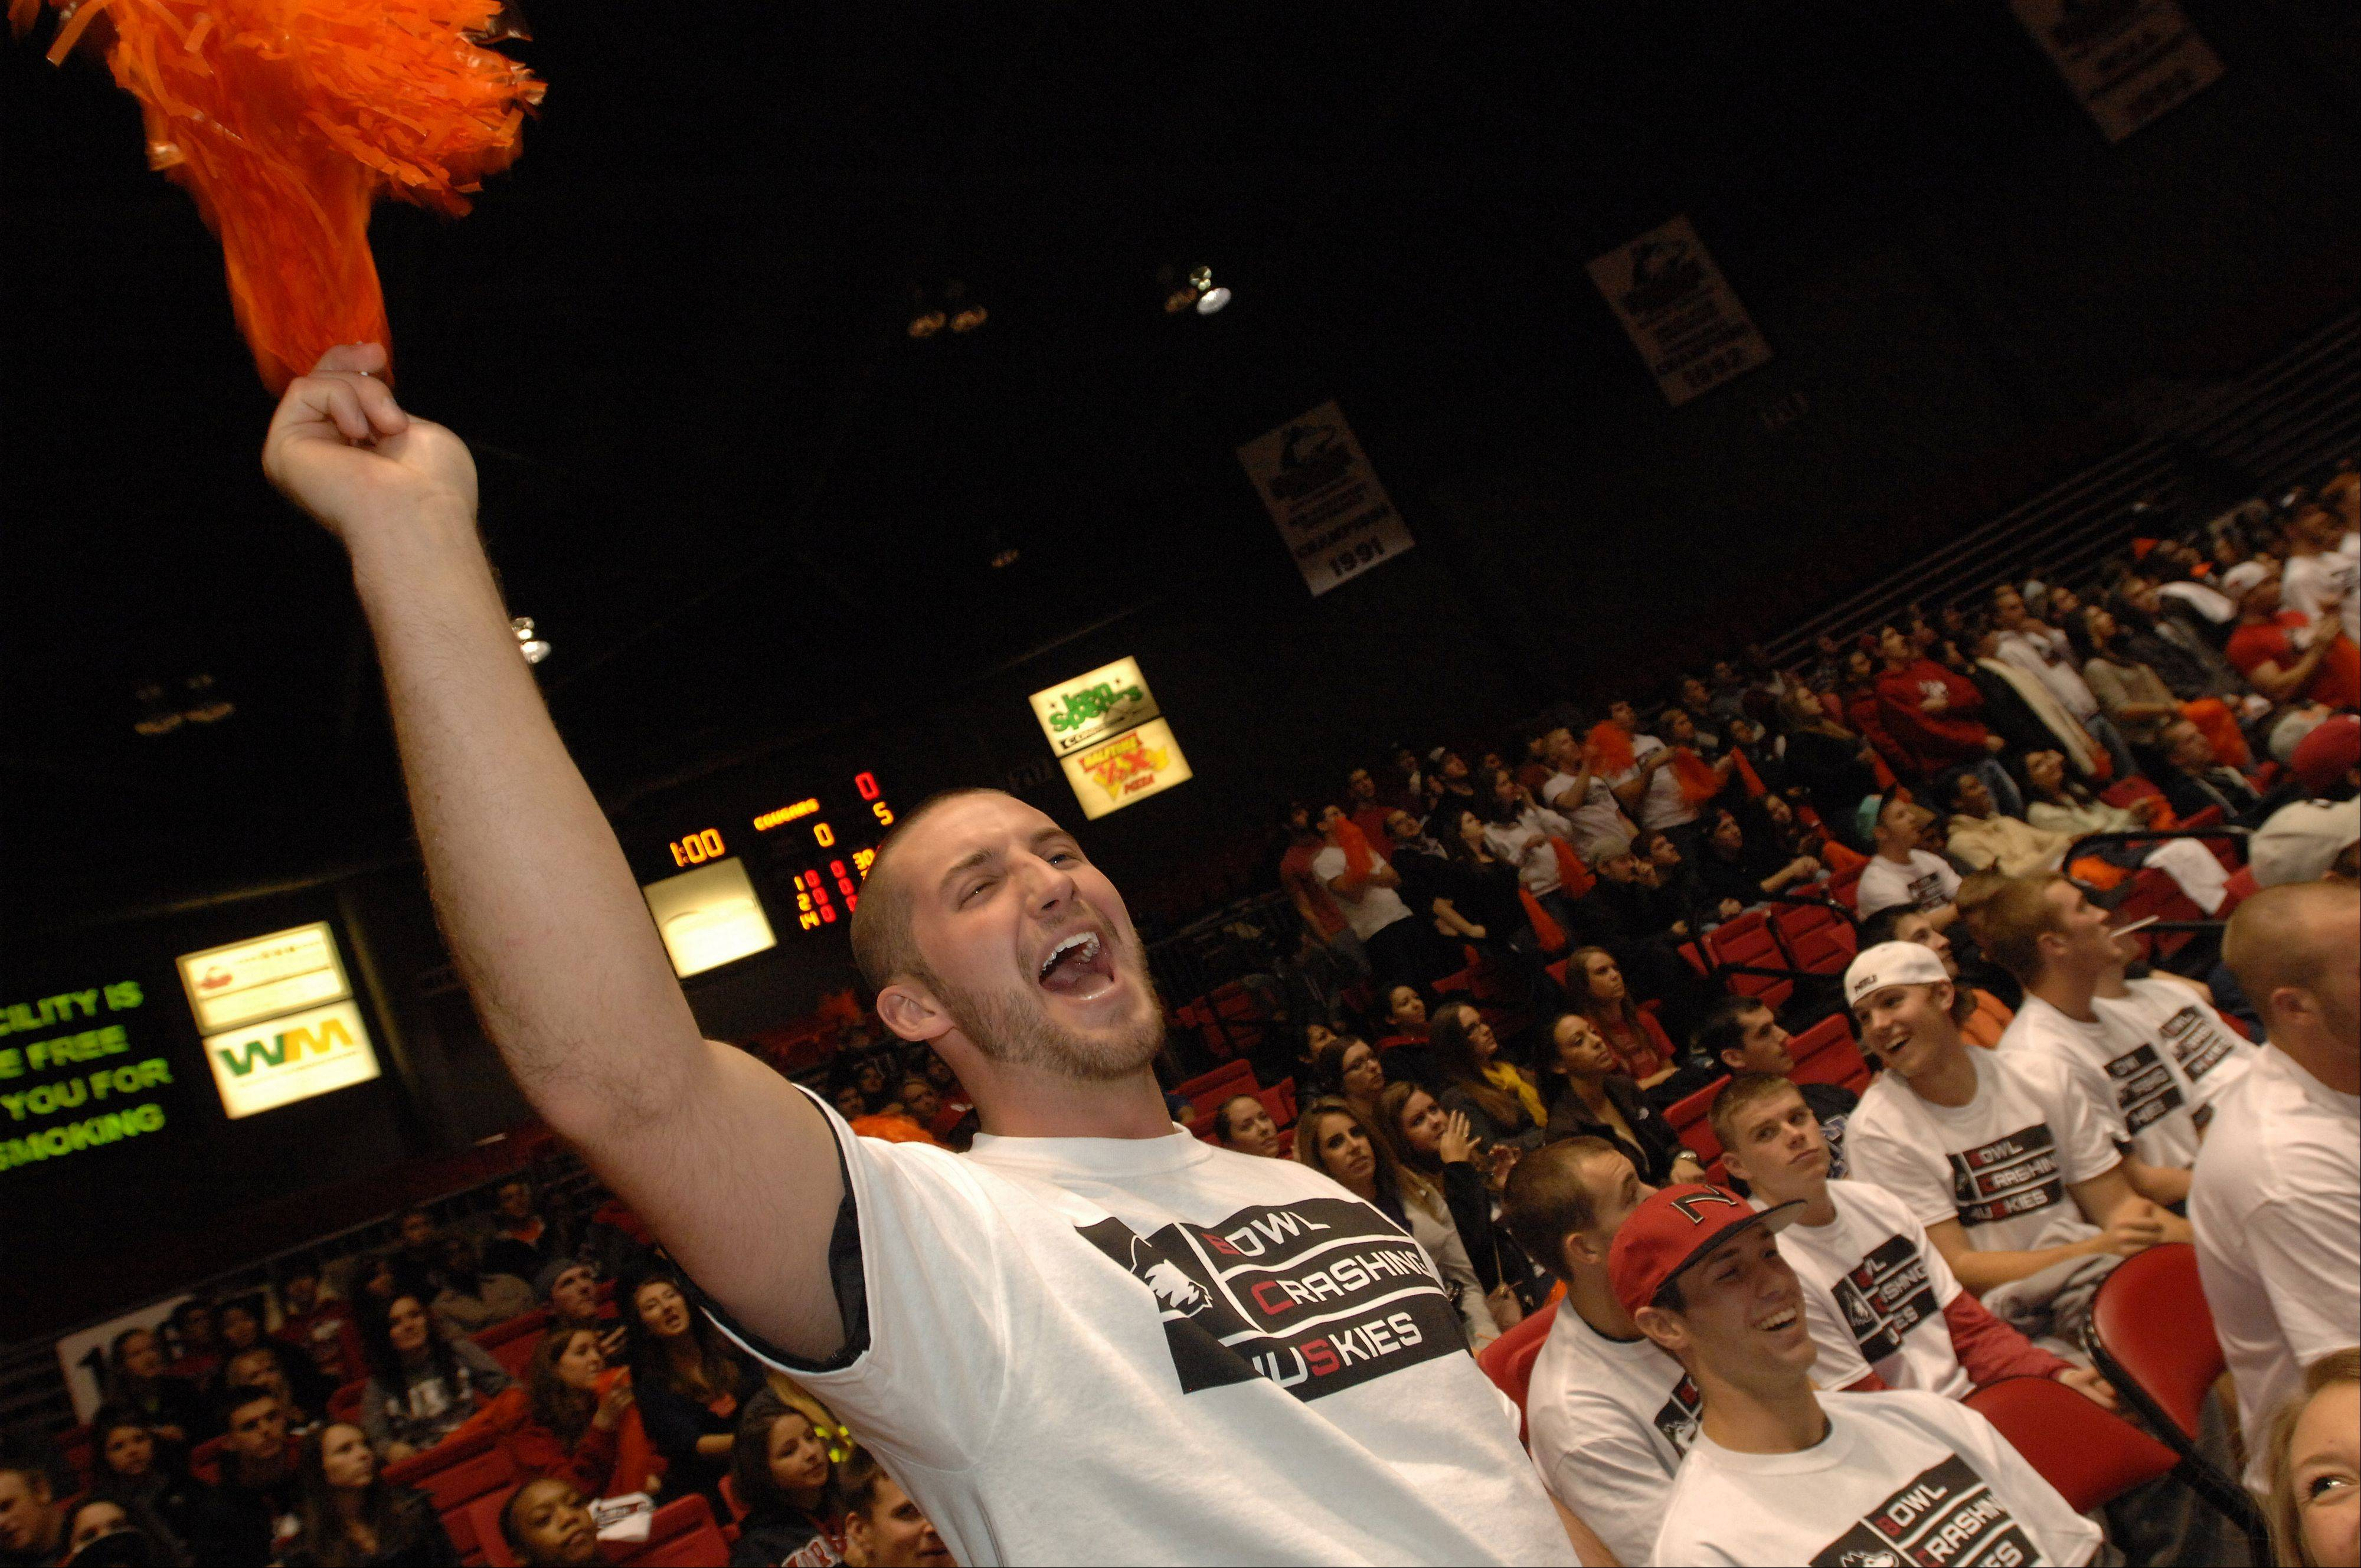 Connor Schomig Cheers on NIU in a Bowl Crashing Huskies shirt during the basketball- pep rally Wednesday evening at NIU.